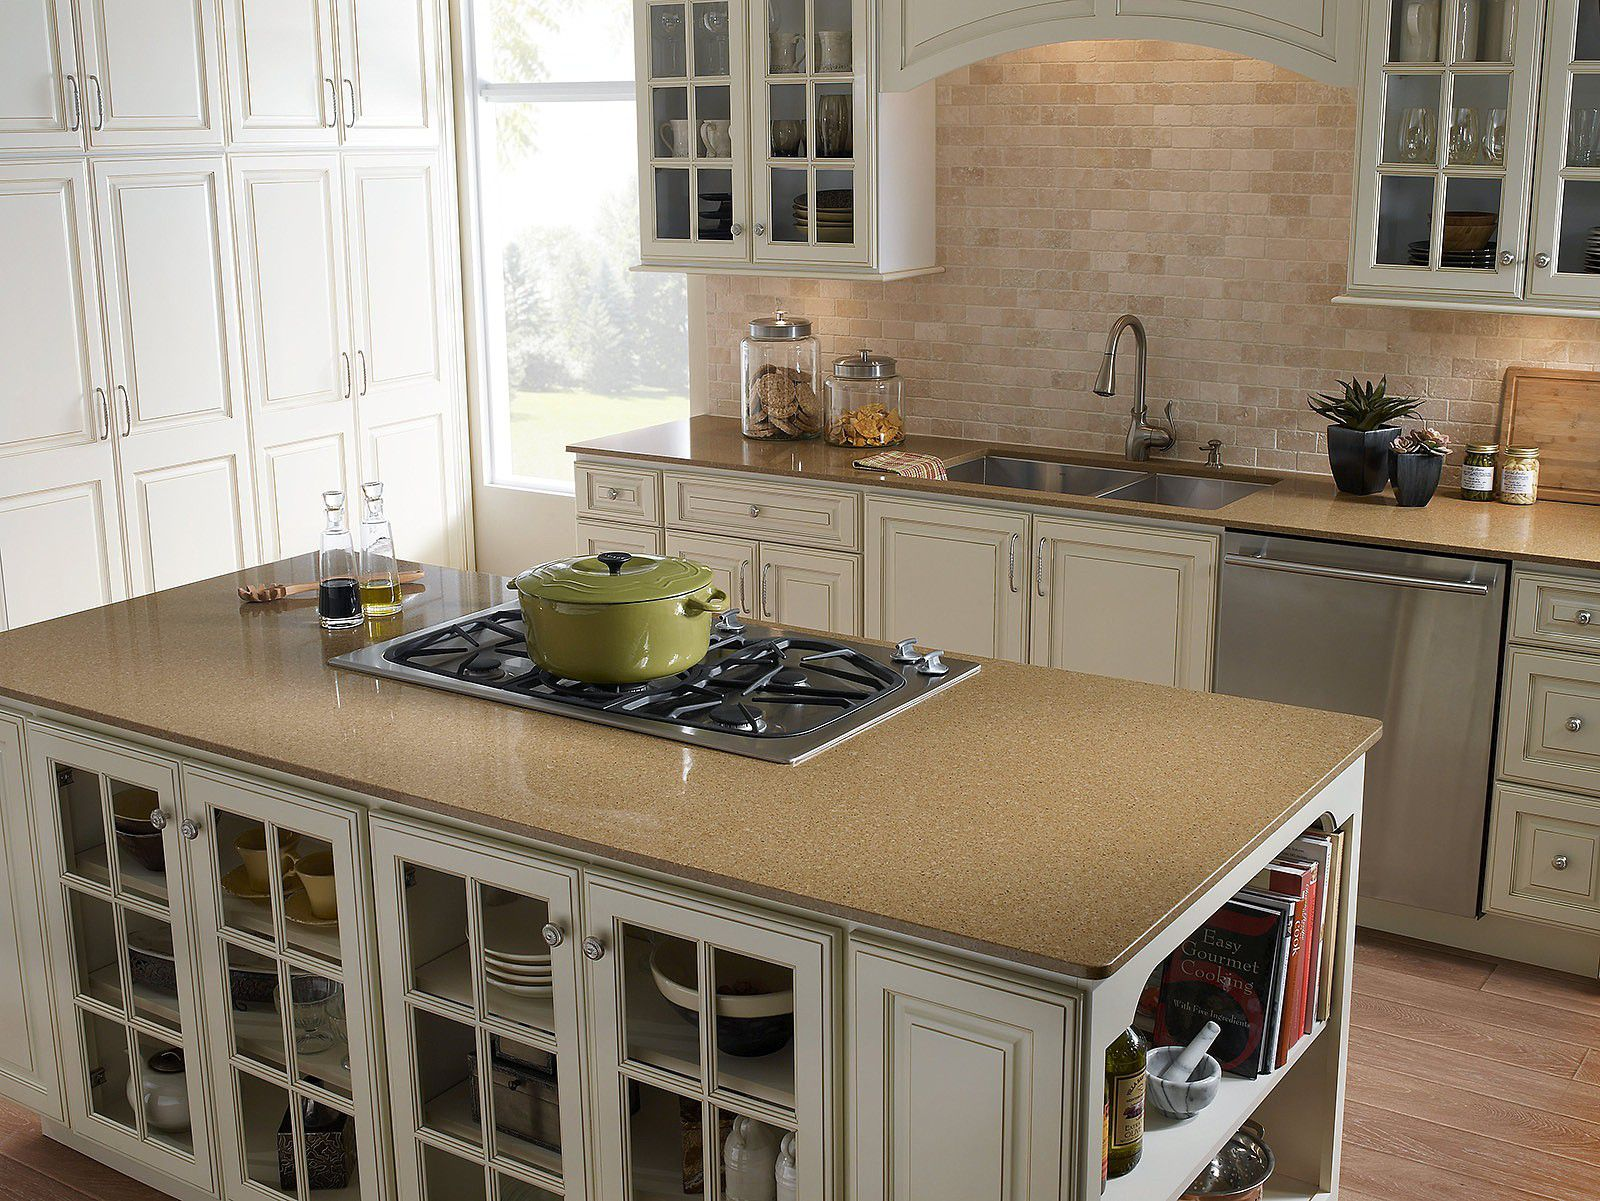 Kitchen Countertops Popular Ideas and